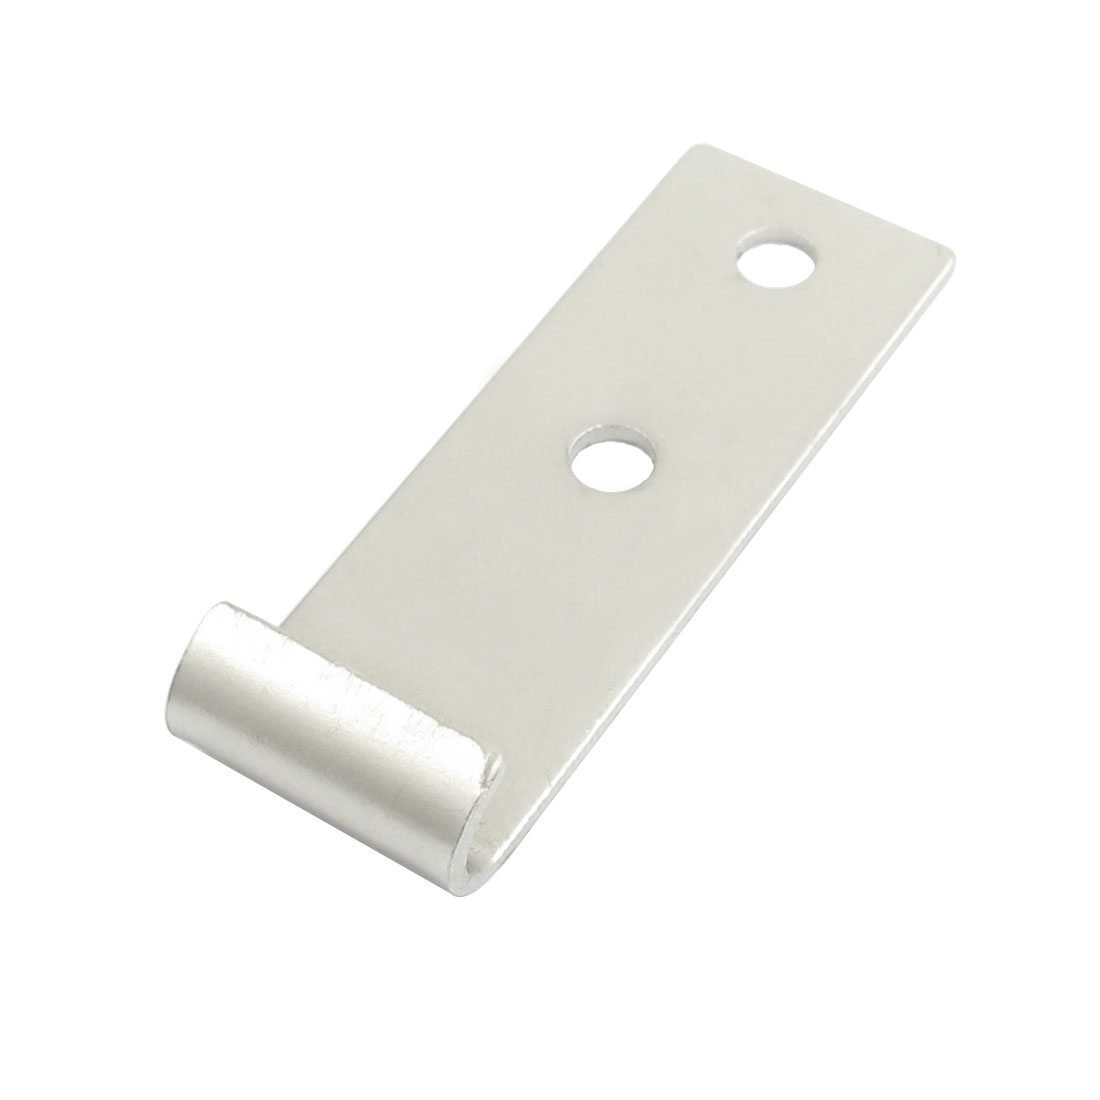 5mm Hole Mounting Silver Tone Iron Strike Plate for Toggle Latch